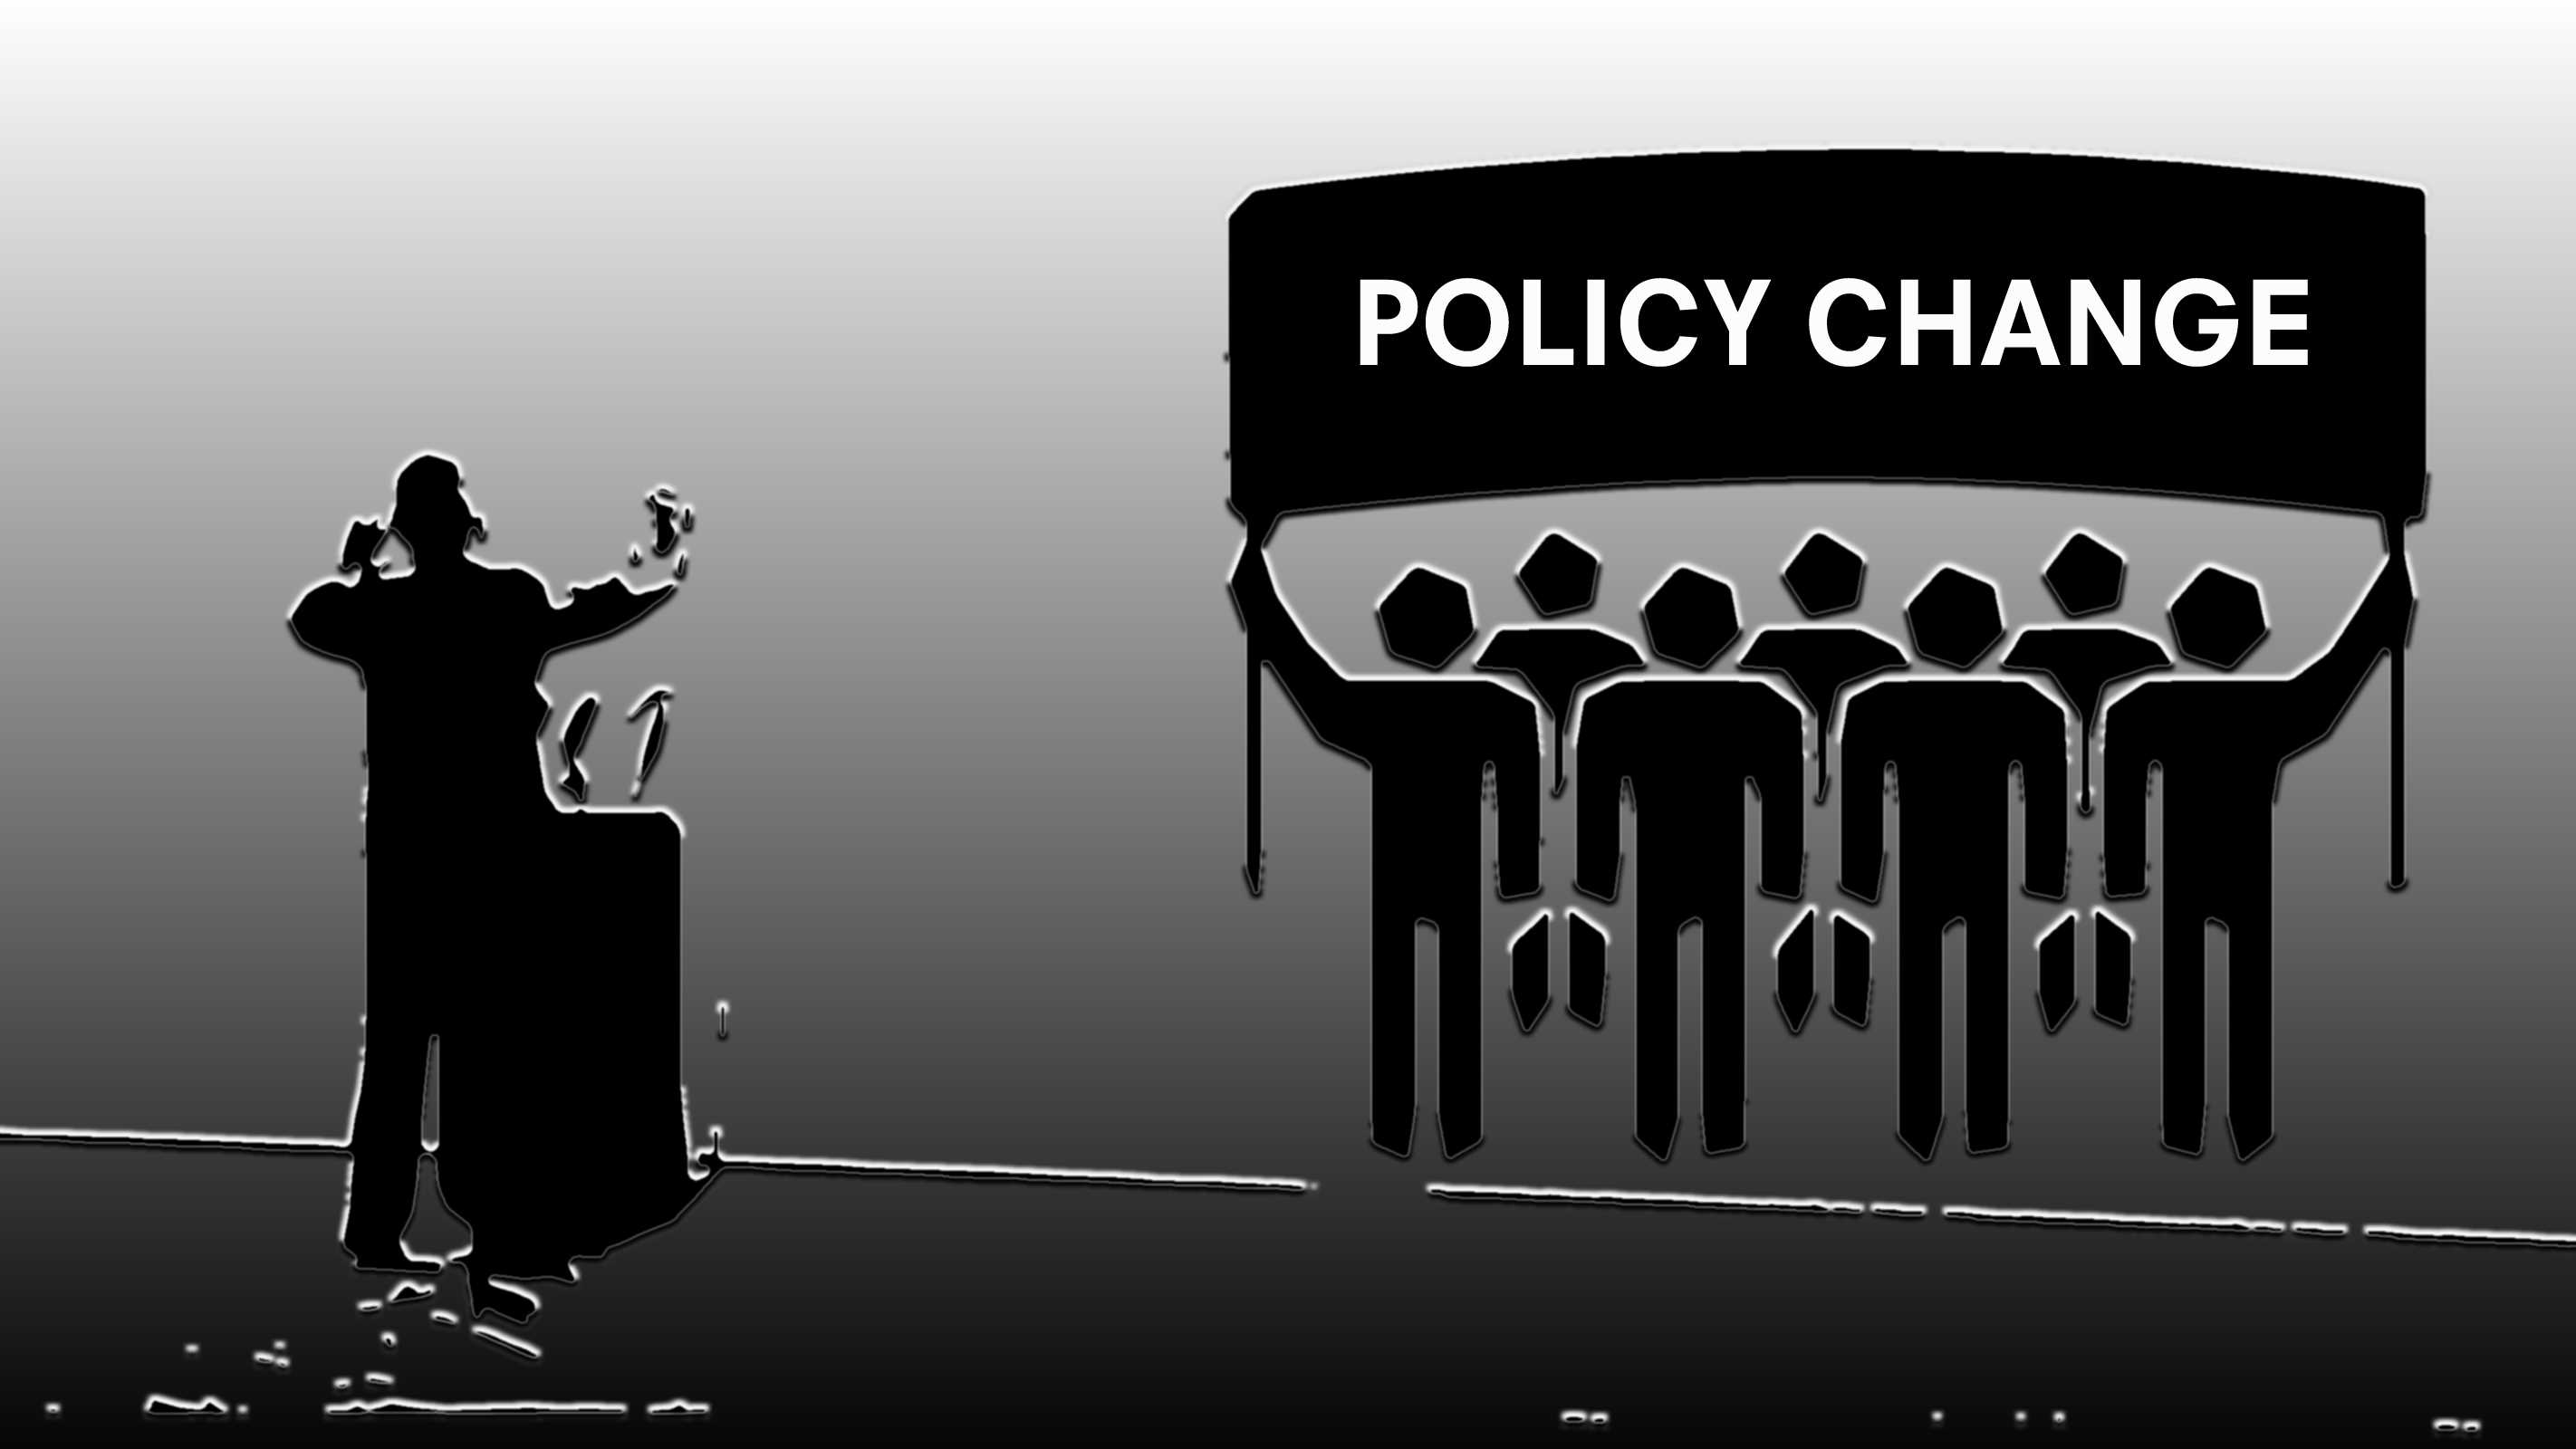 importance of civic engagement  does it affect policy